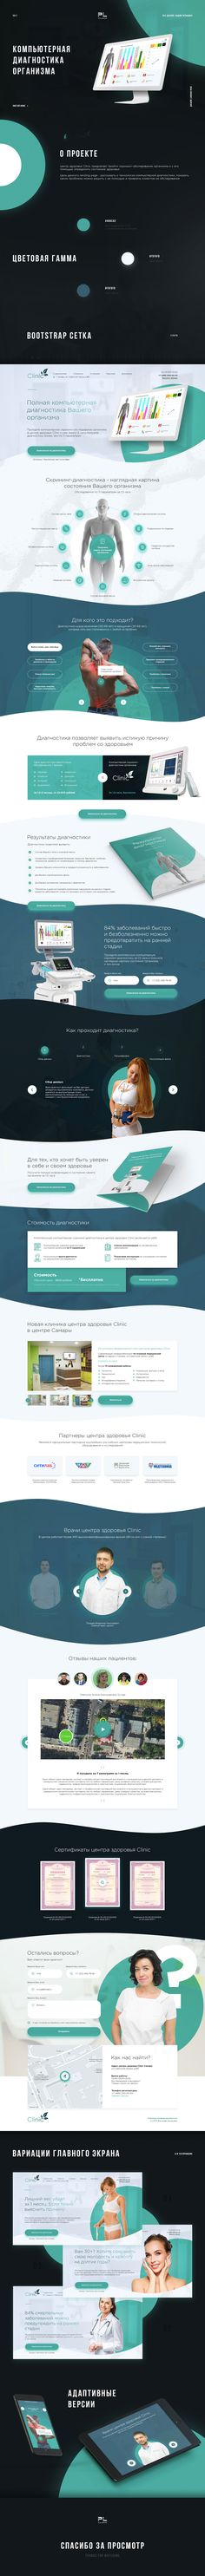 Вадим Чернышев on Behance Design Case, Web Design, Page Template, Templates, Presentation Design, Landing, Clinic, Medicine, Behance